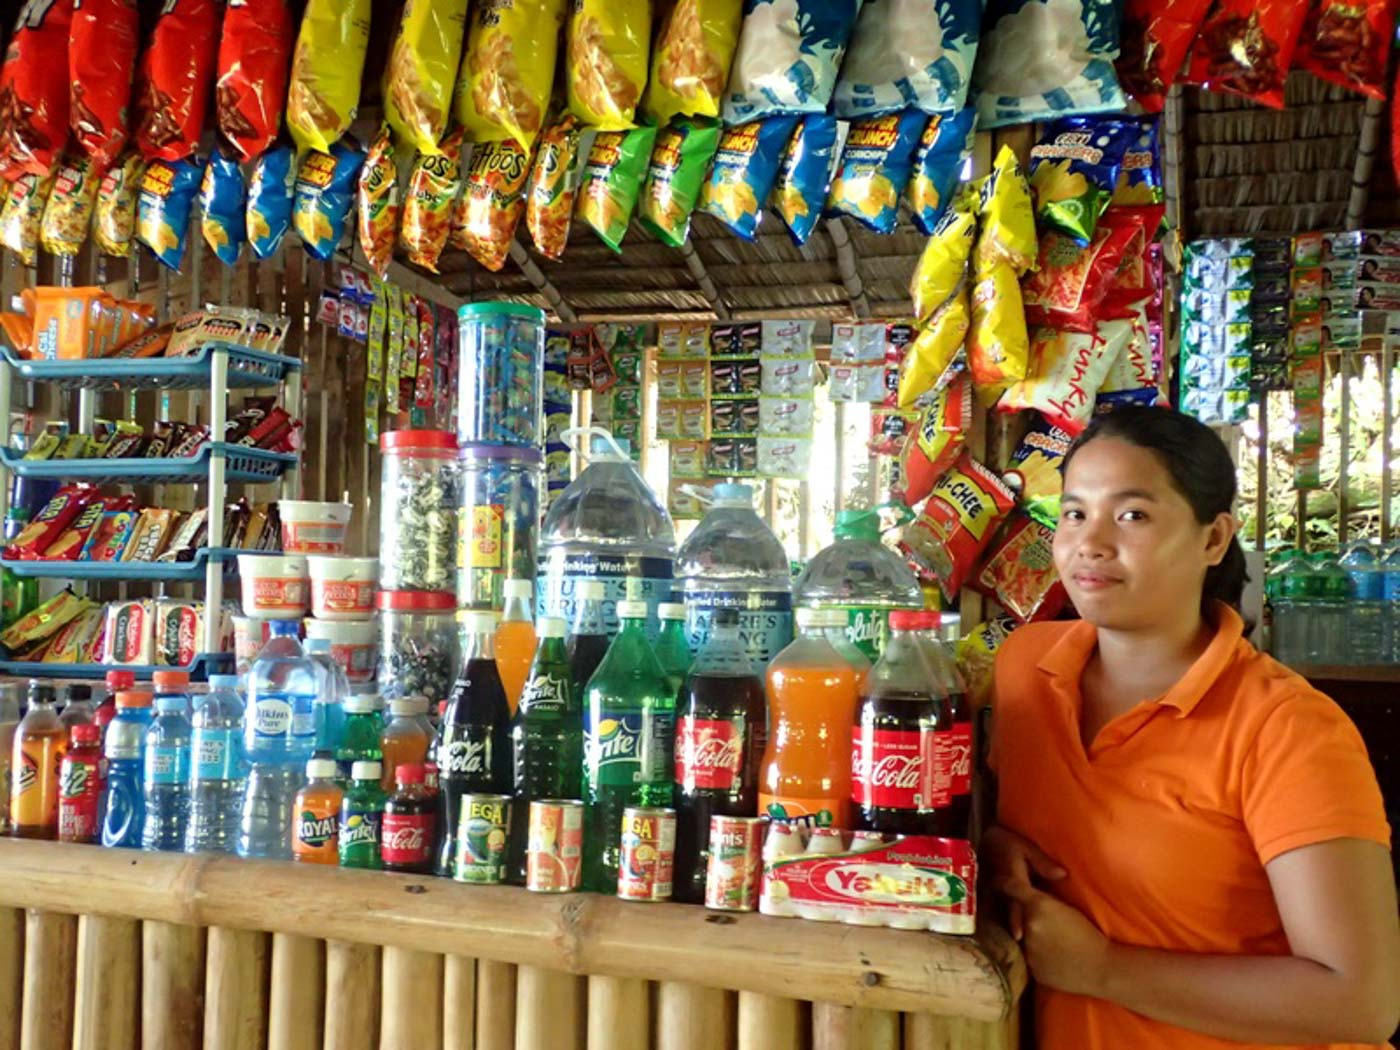 DRY GOODS. Also in the uphill area are the dry goods stalls. Photo by Claire Madarang/Rappler